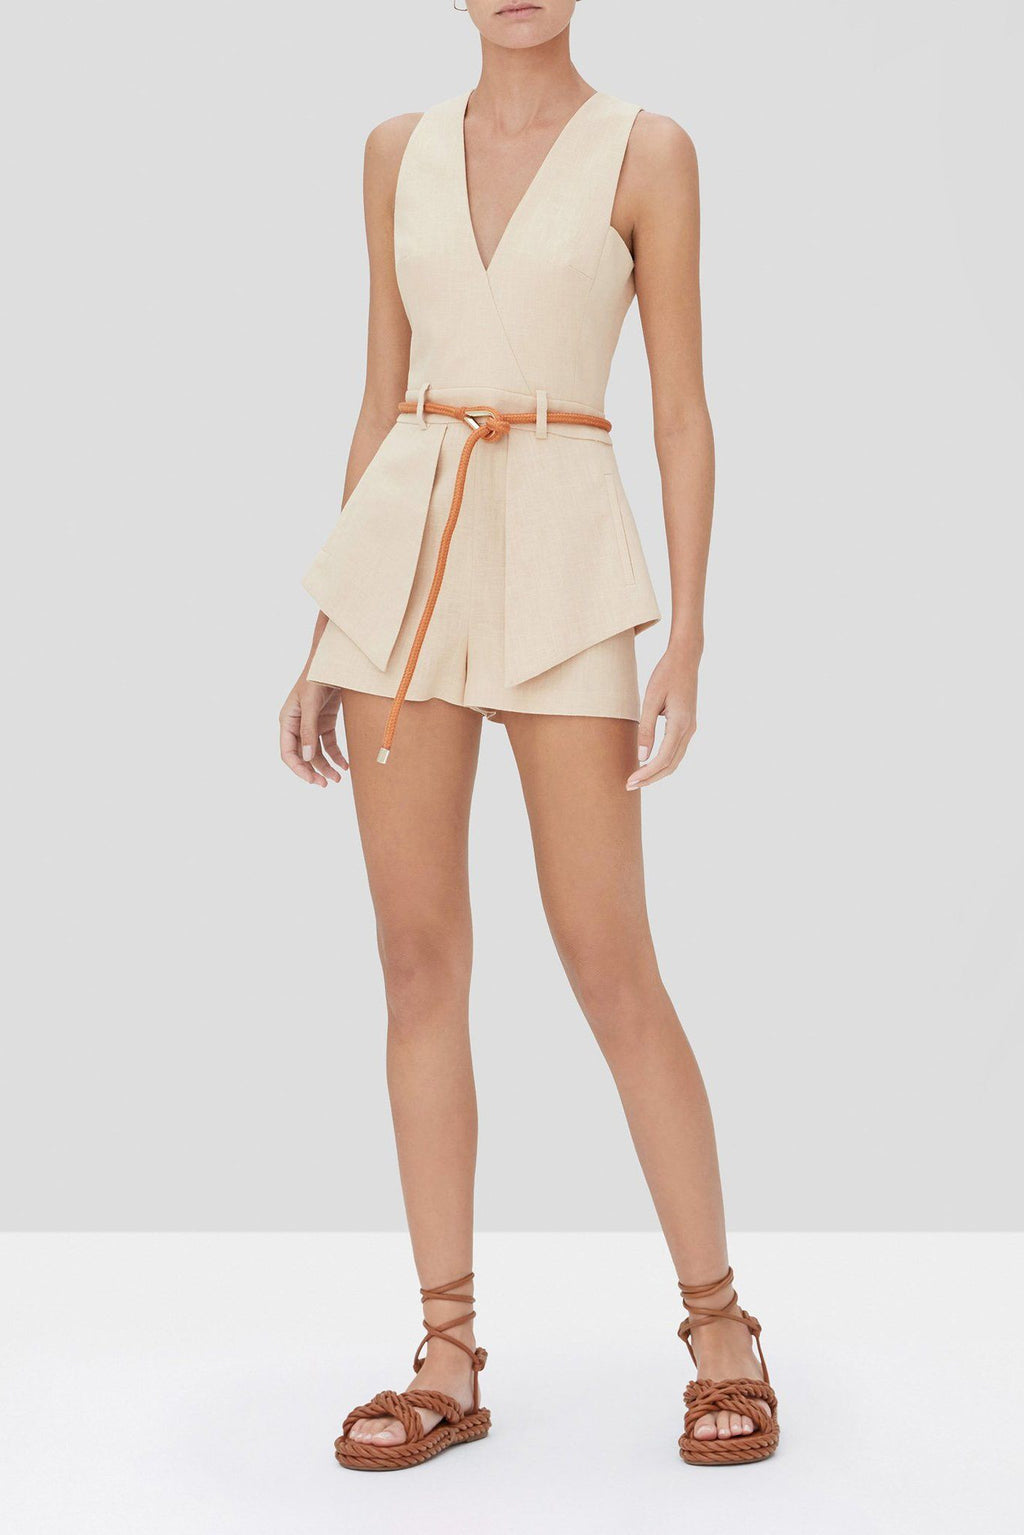 ALEXIS | Darby Romper - Fawn